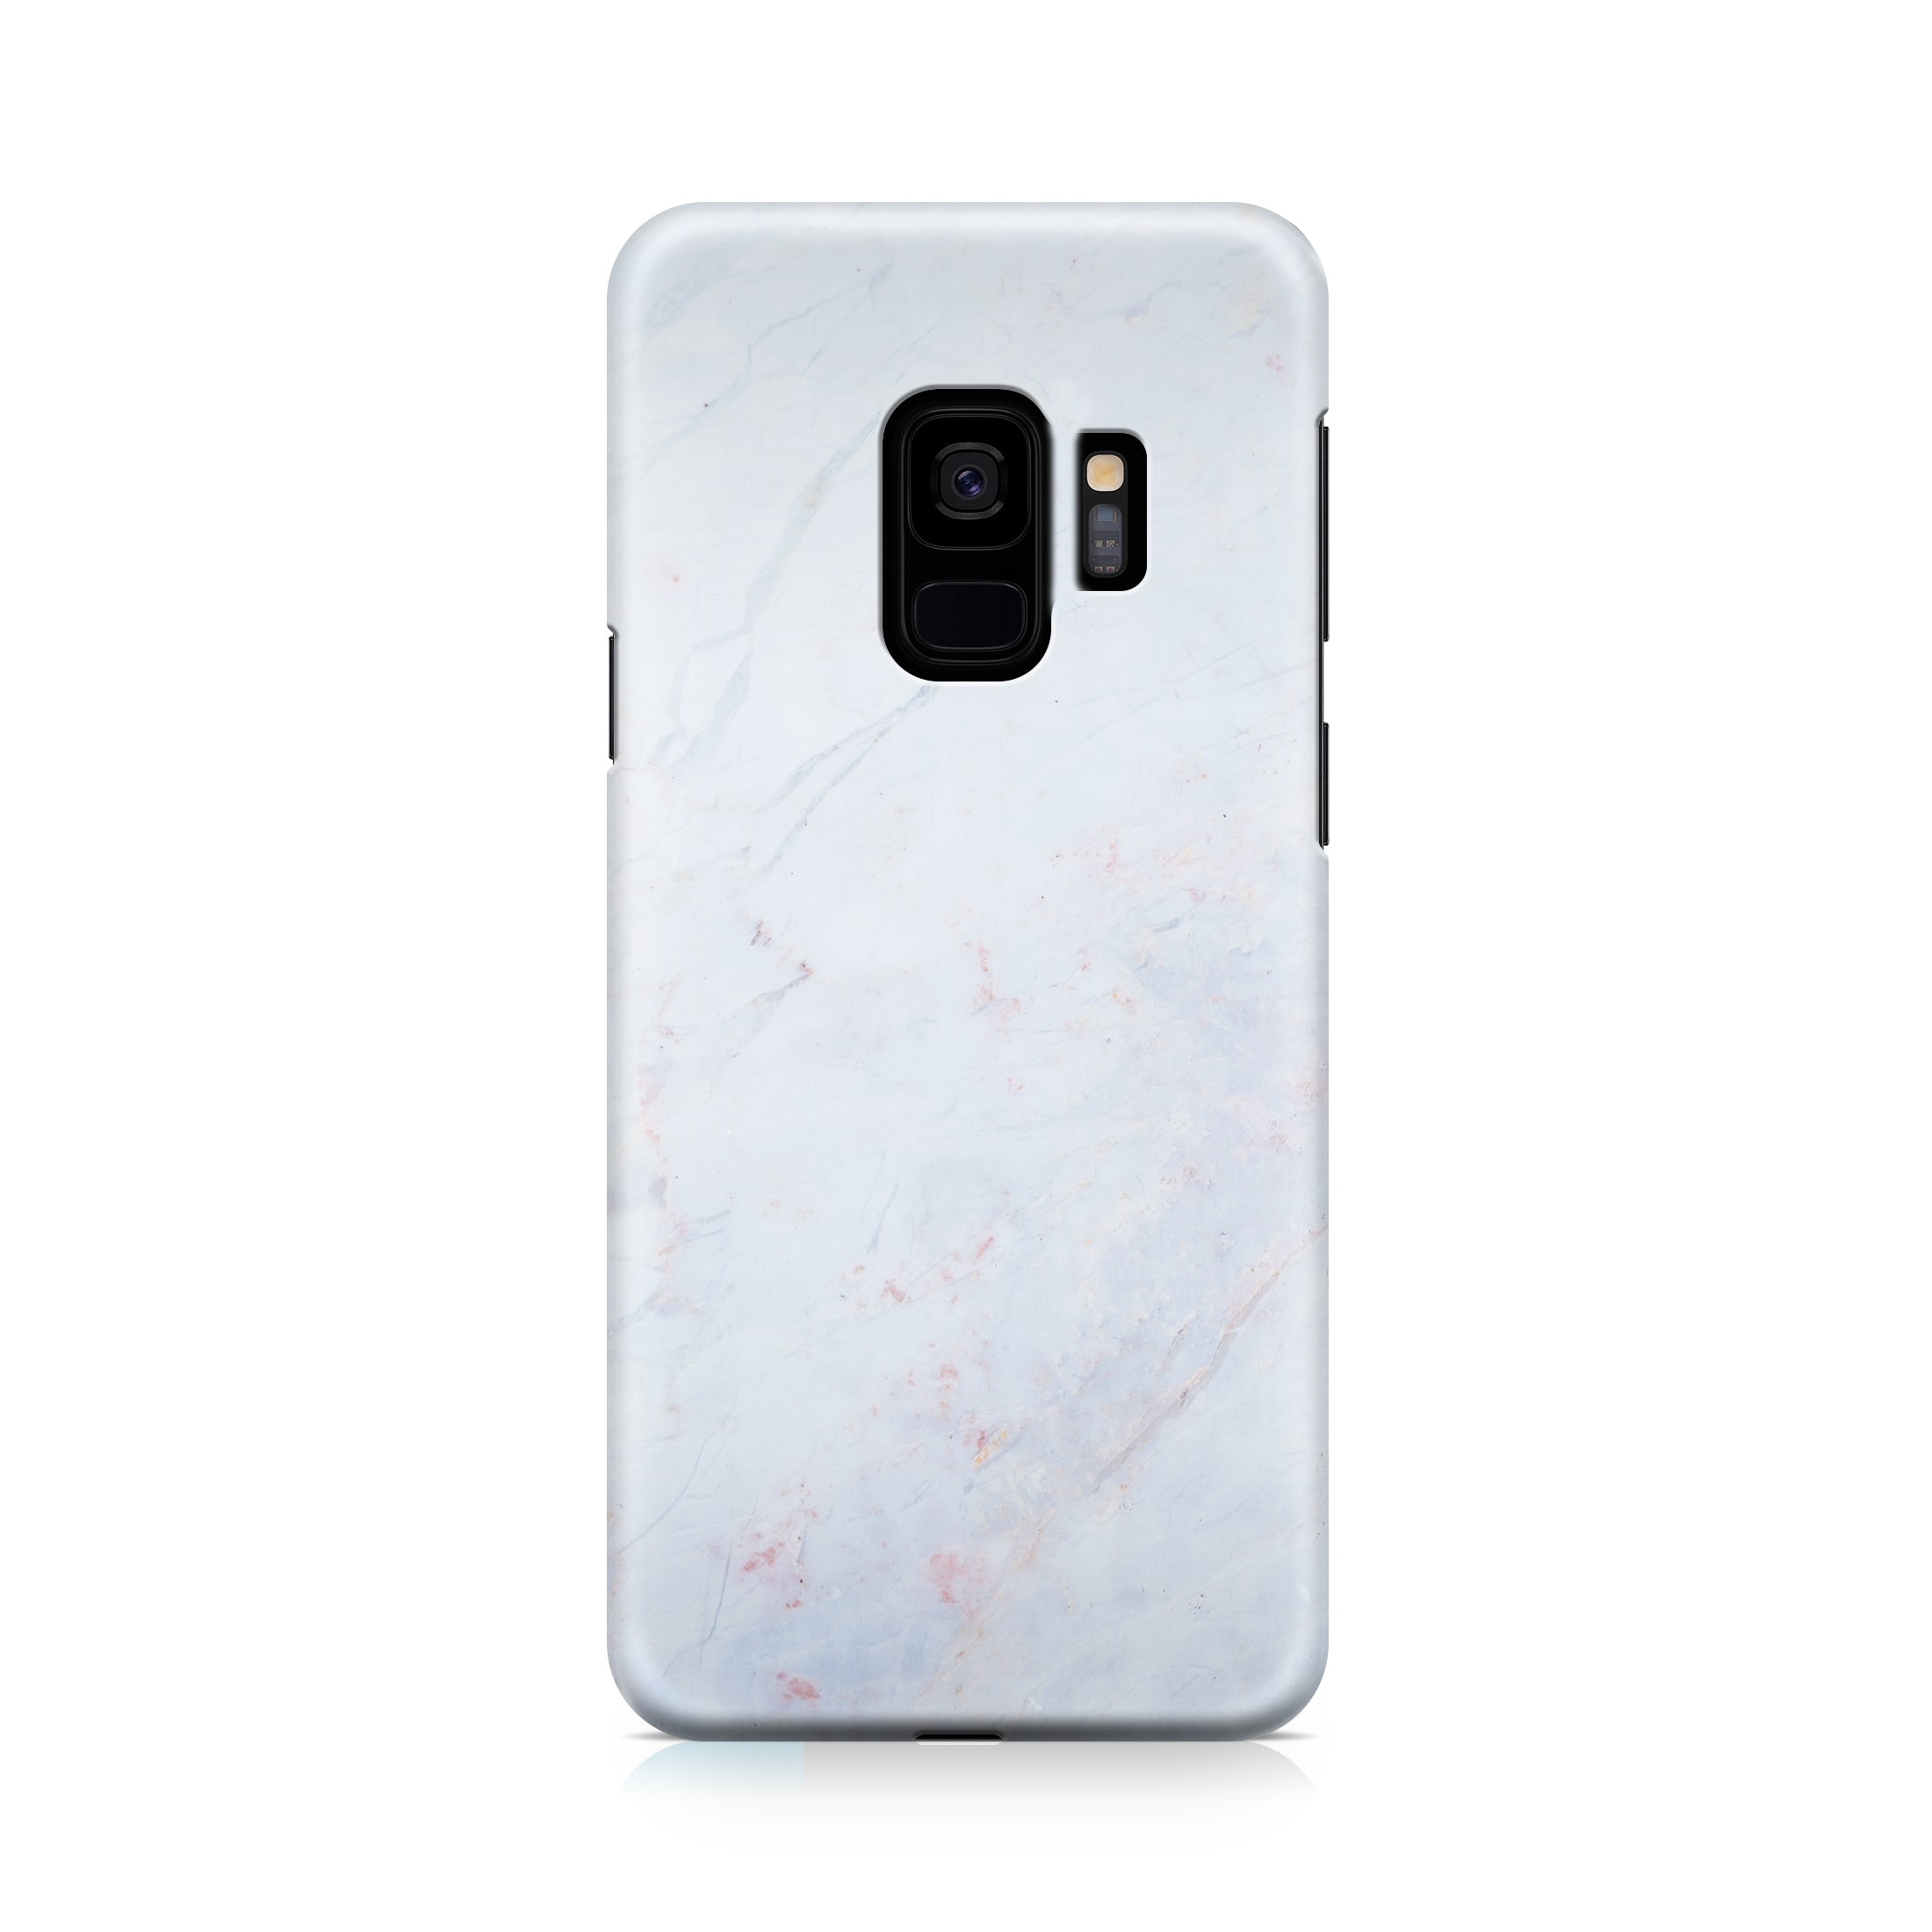 SKY MARBLE SAMSUNG CASE + SCREEN PROTECTOR